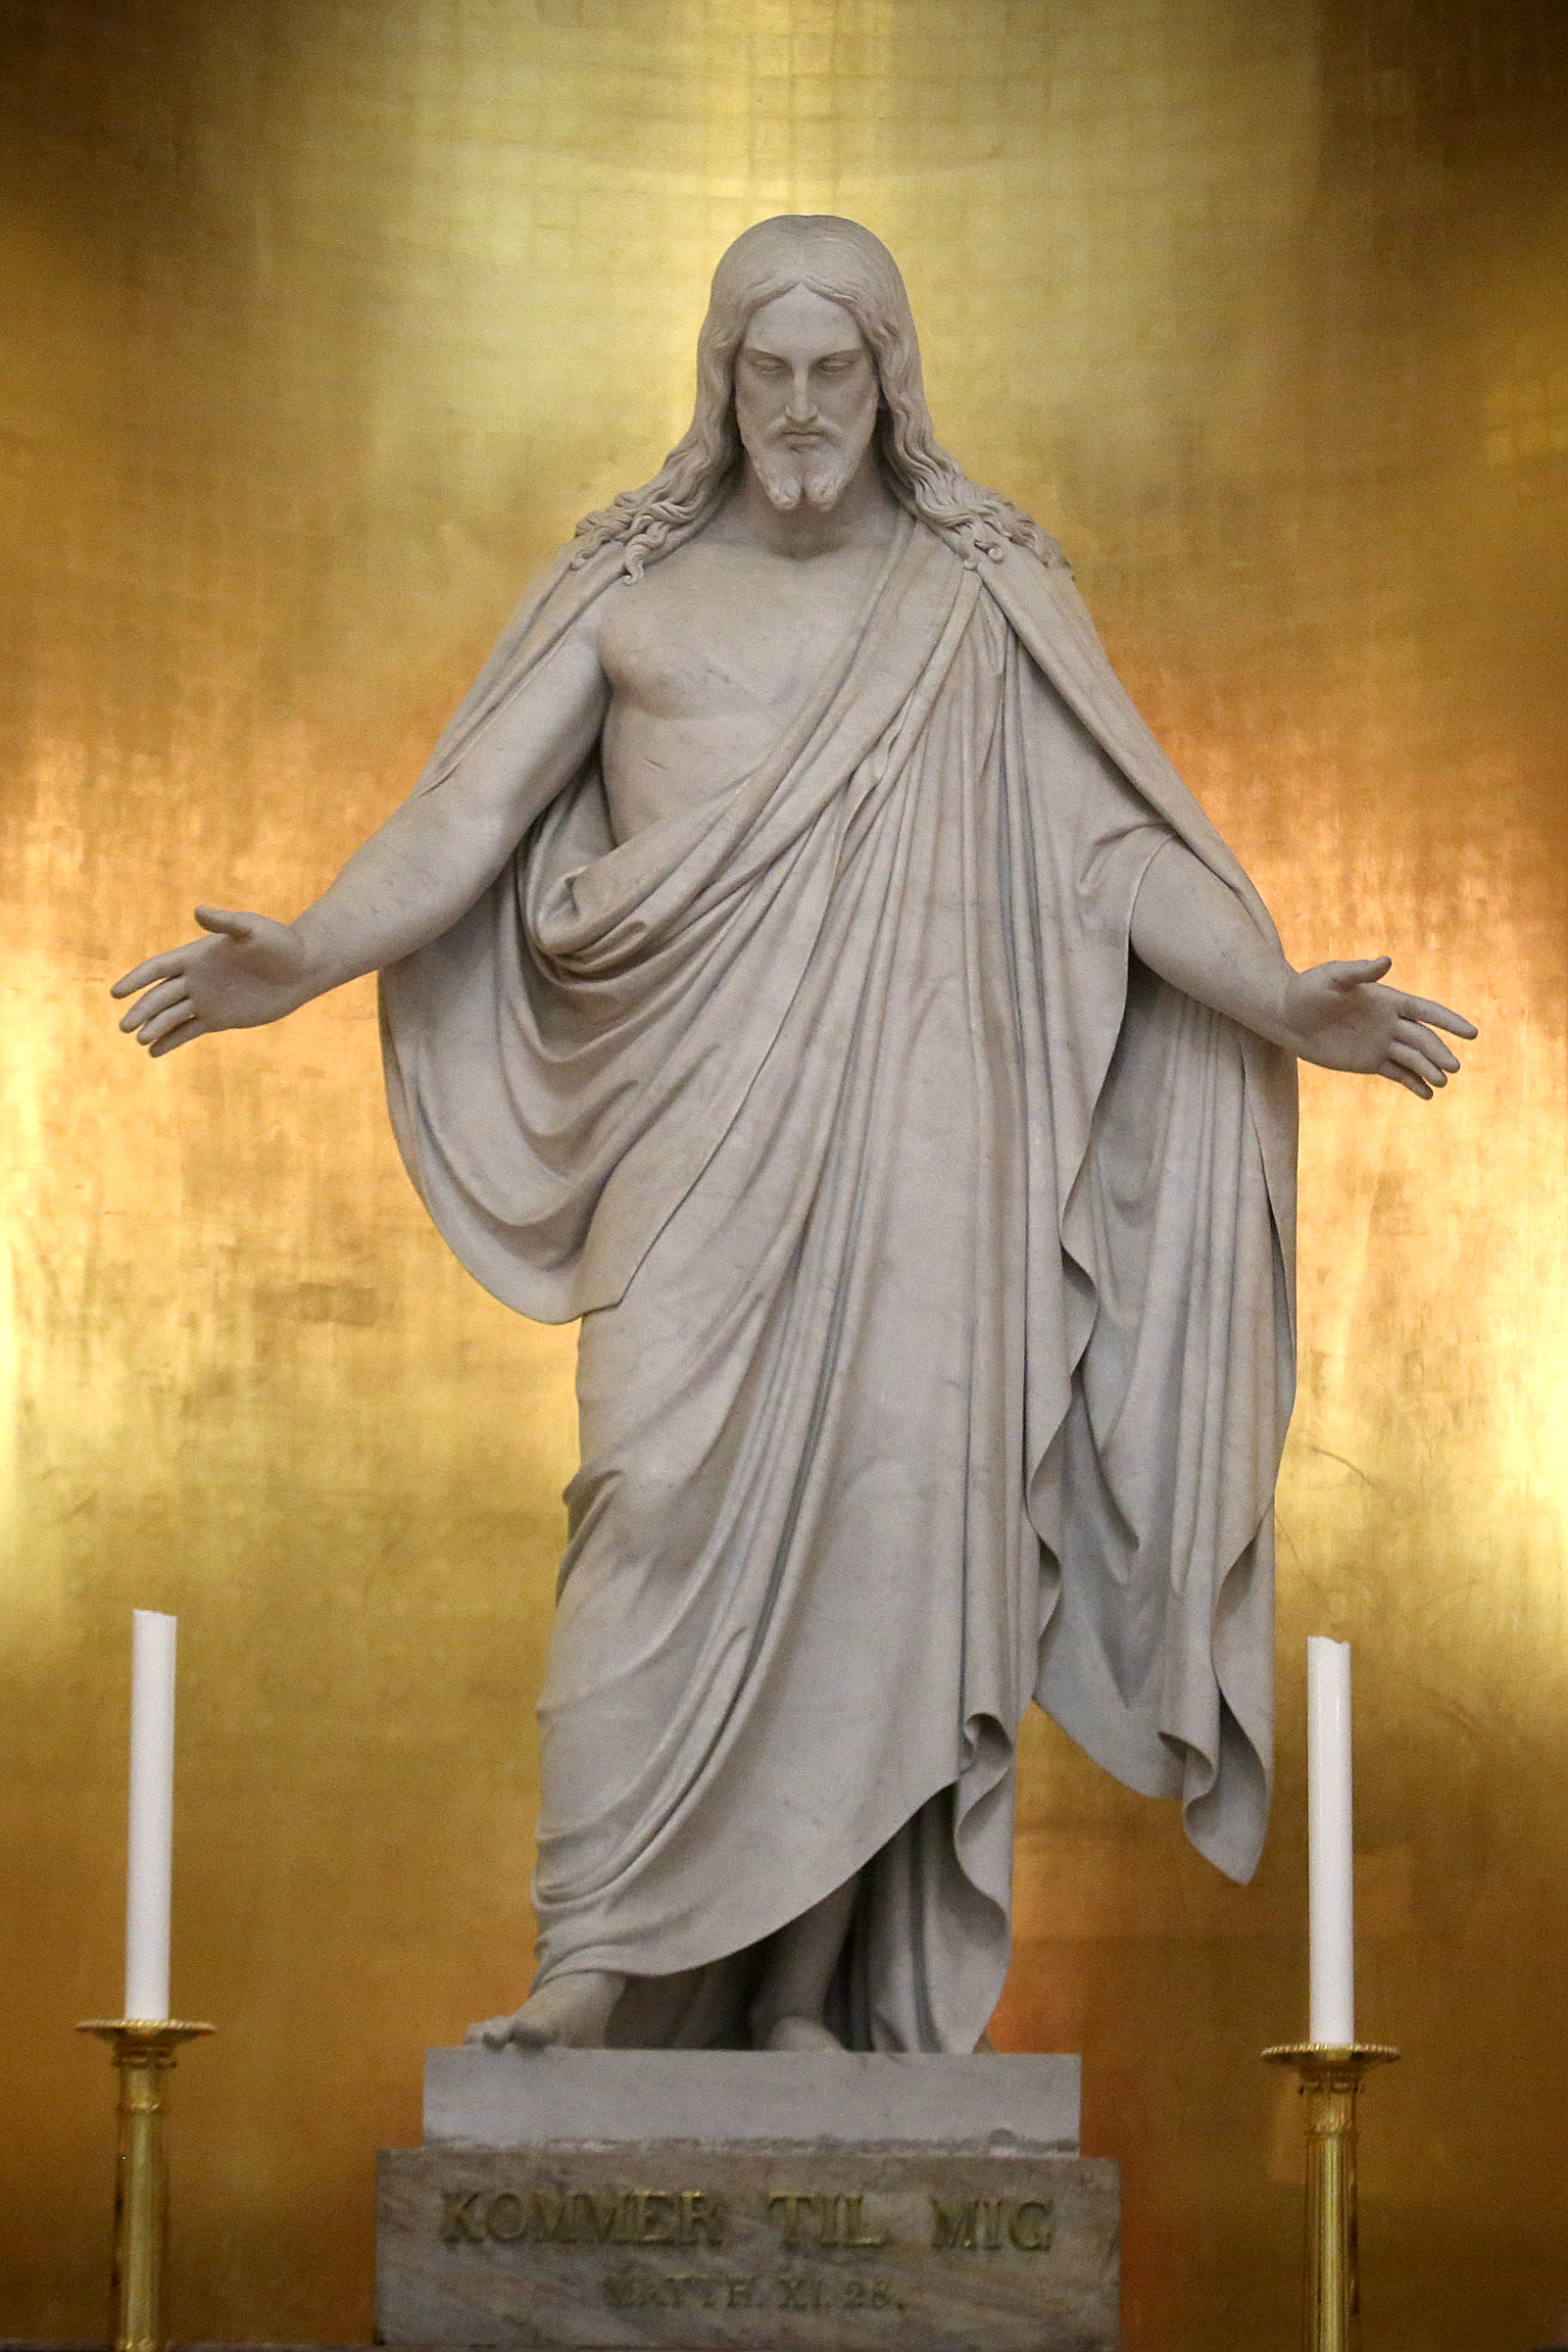 Bertel Thorvaldsen's original Christus statue is in the Church of Our Lady in Copenhagen, Denmark, on Tuesday, Nov. 13, 2018.